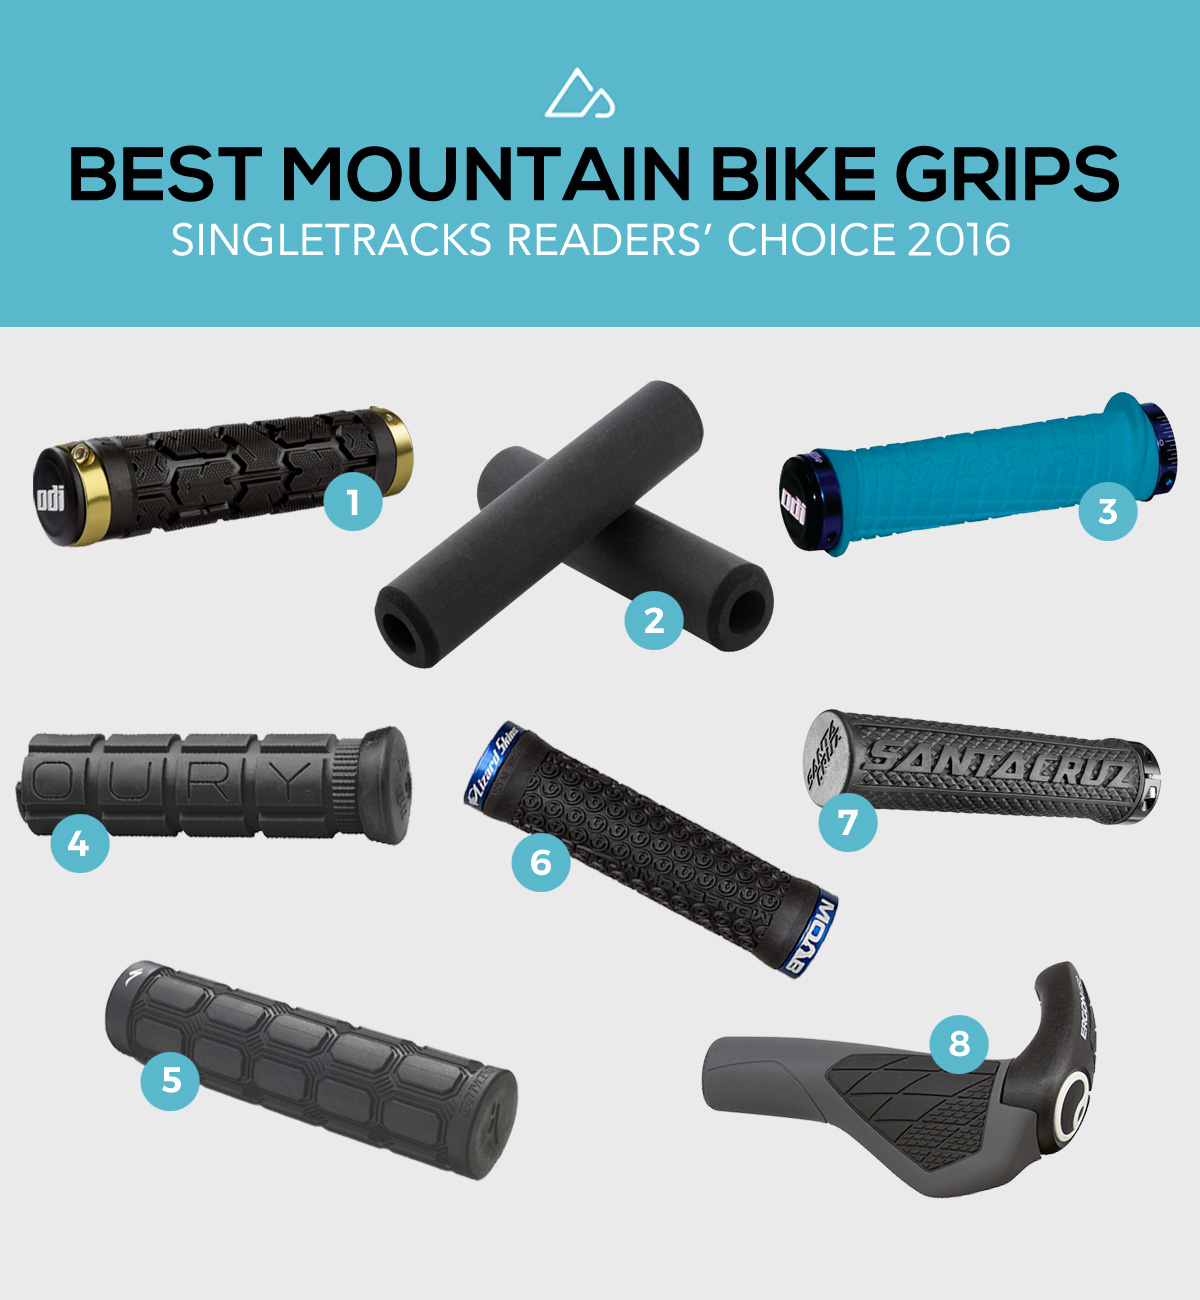 Get a Grip! The Best Mountain Bike Grips, According to Our ...